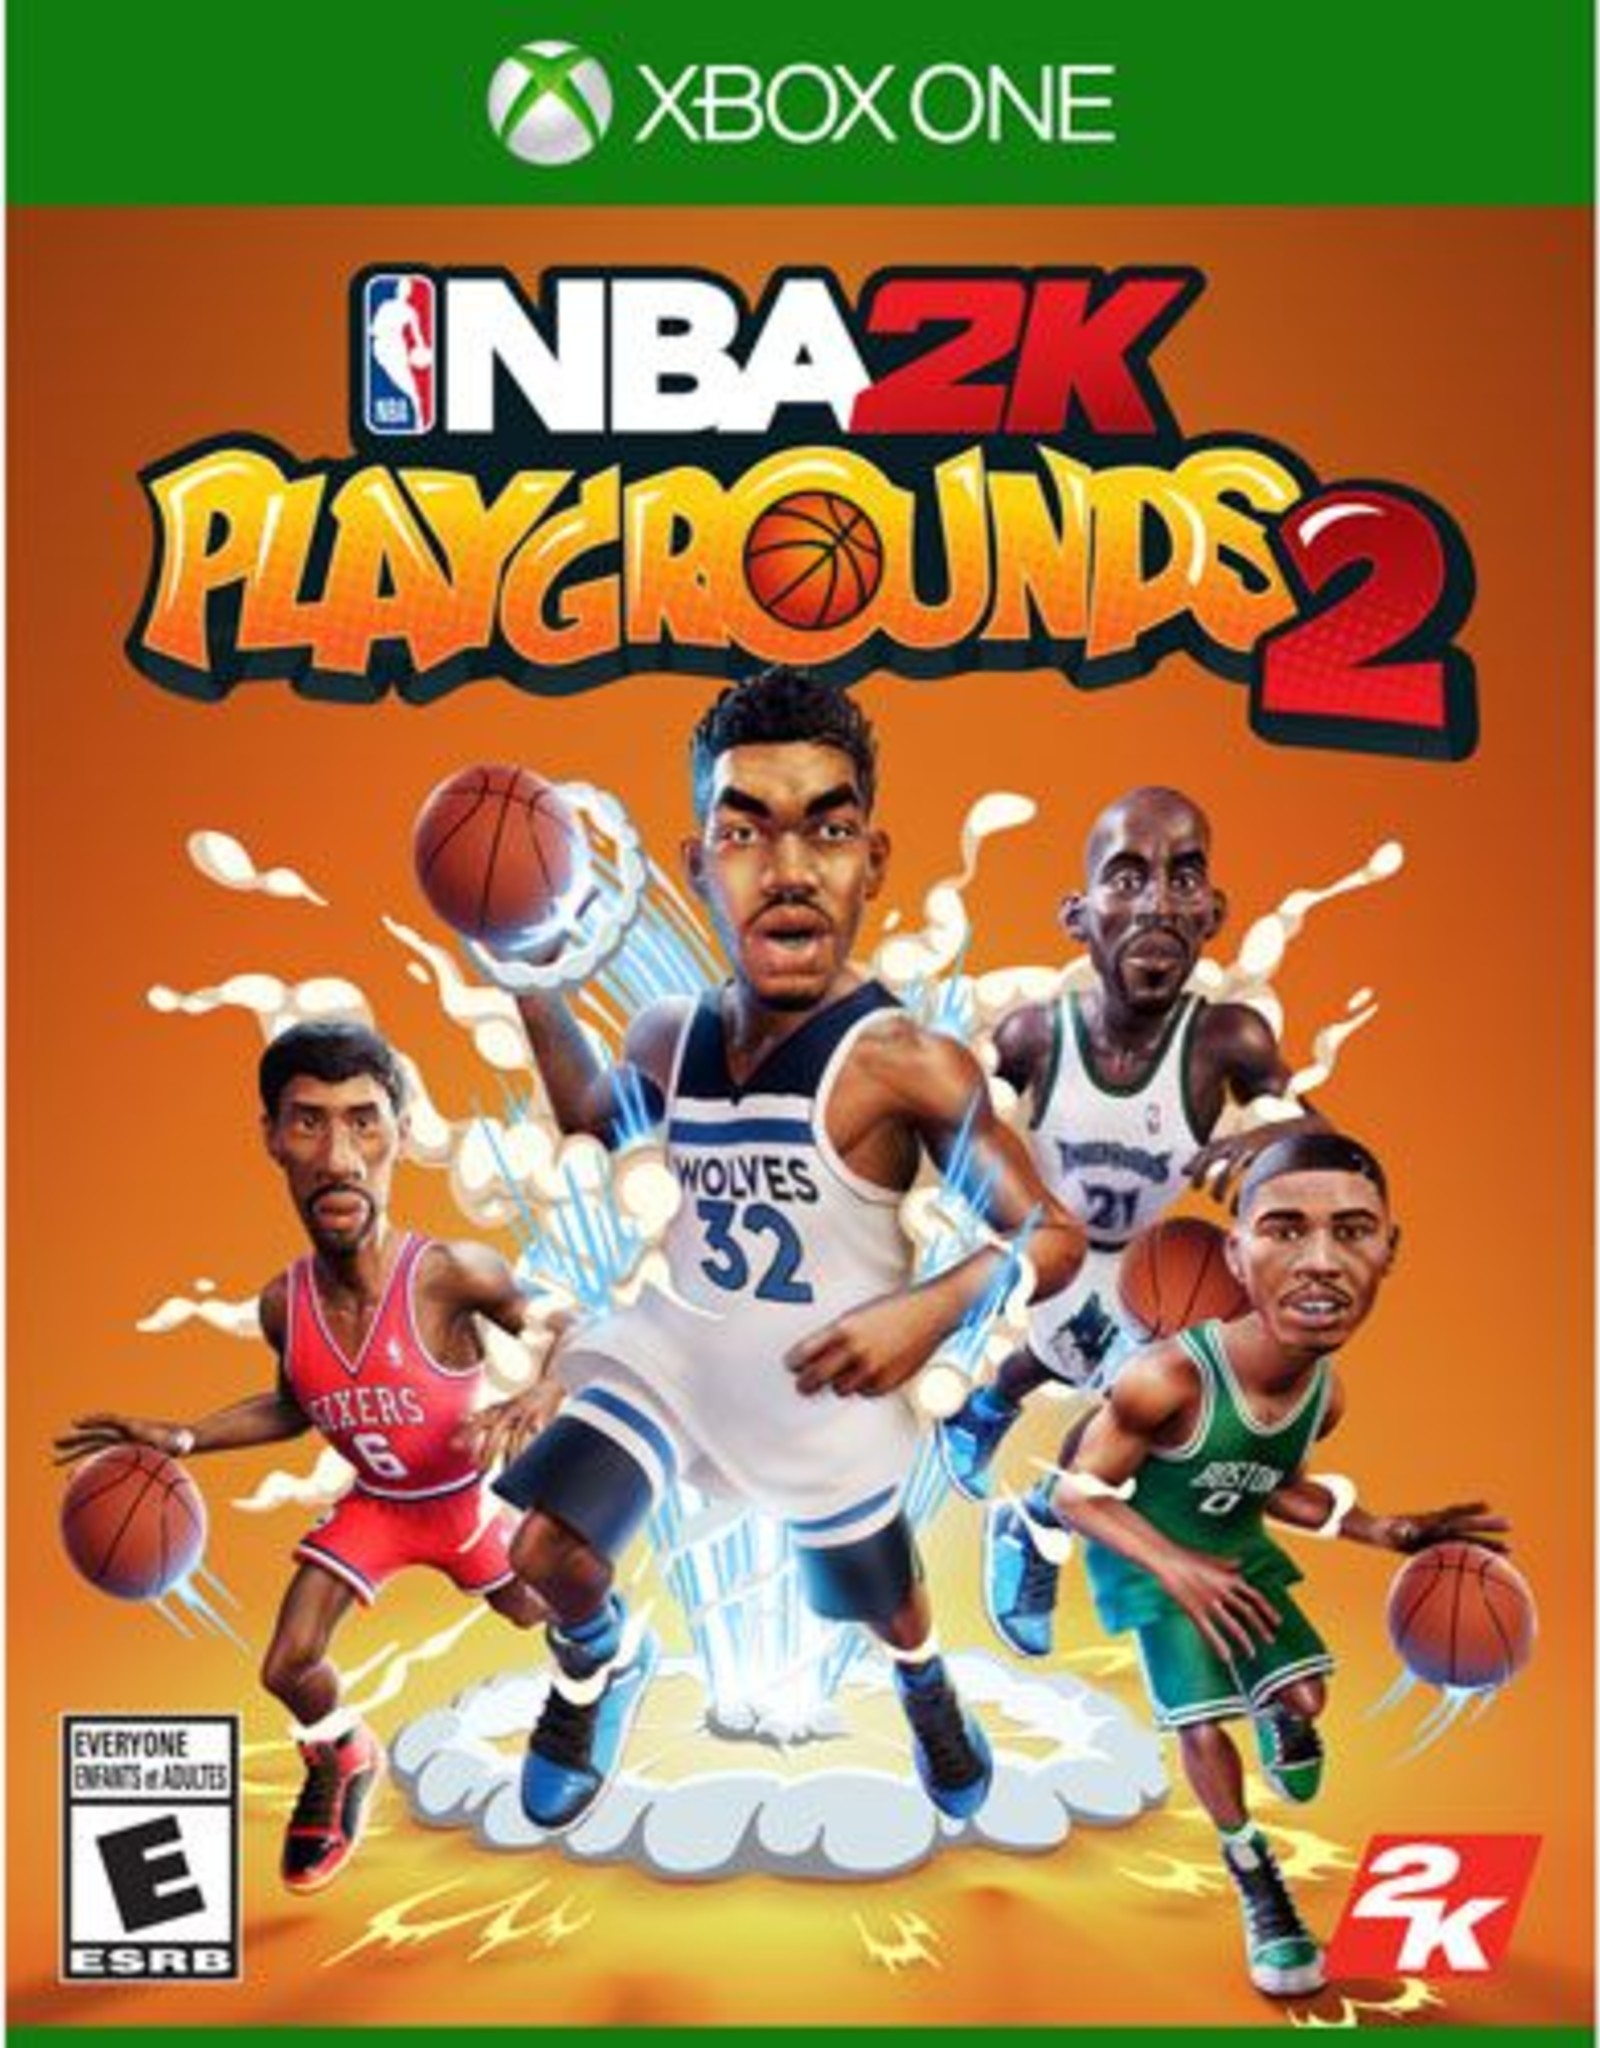 NBA 2K PLaygrounds 2 - XBOne DIGITAL